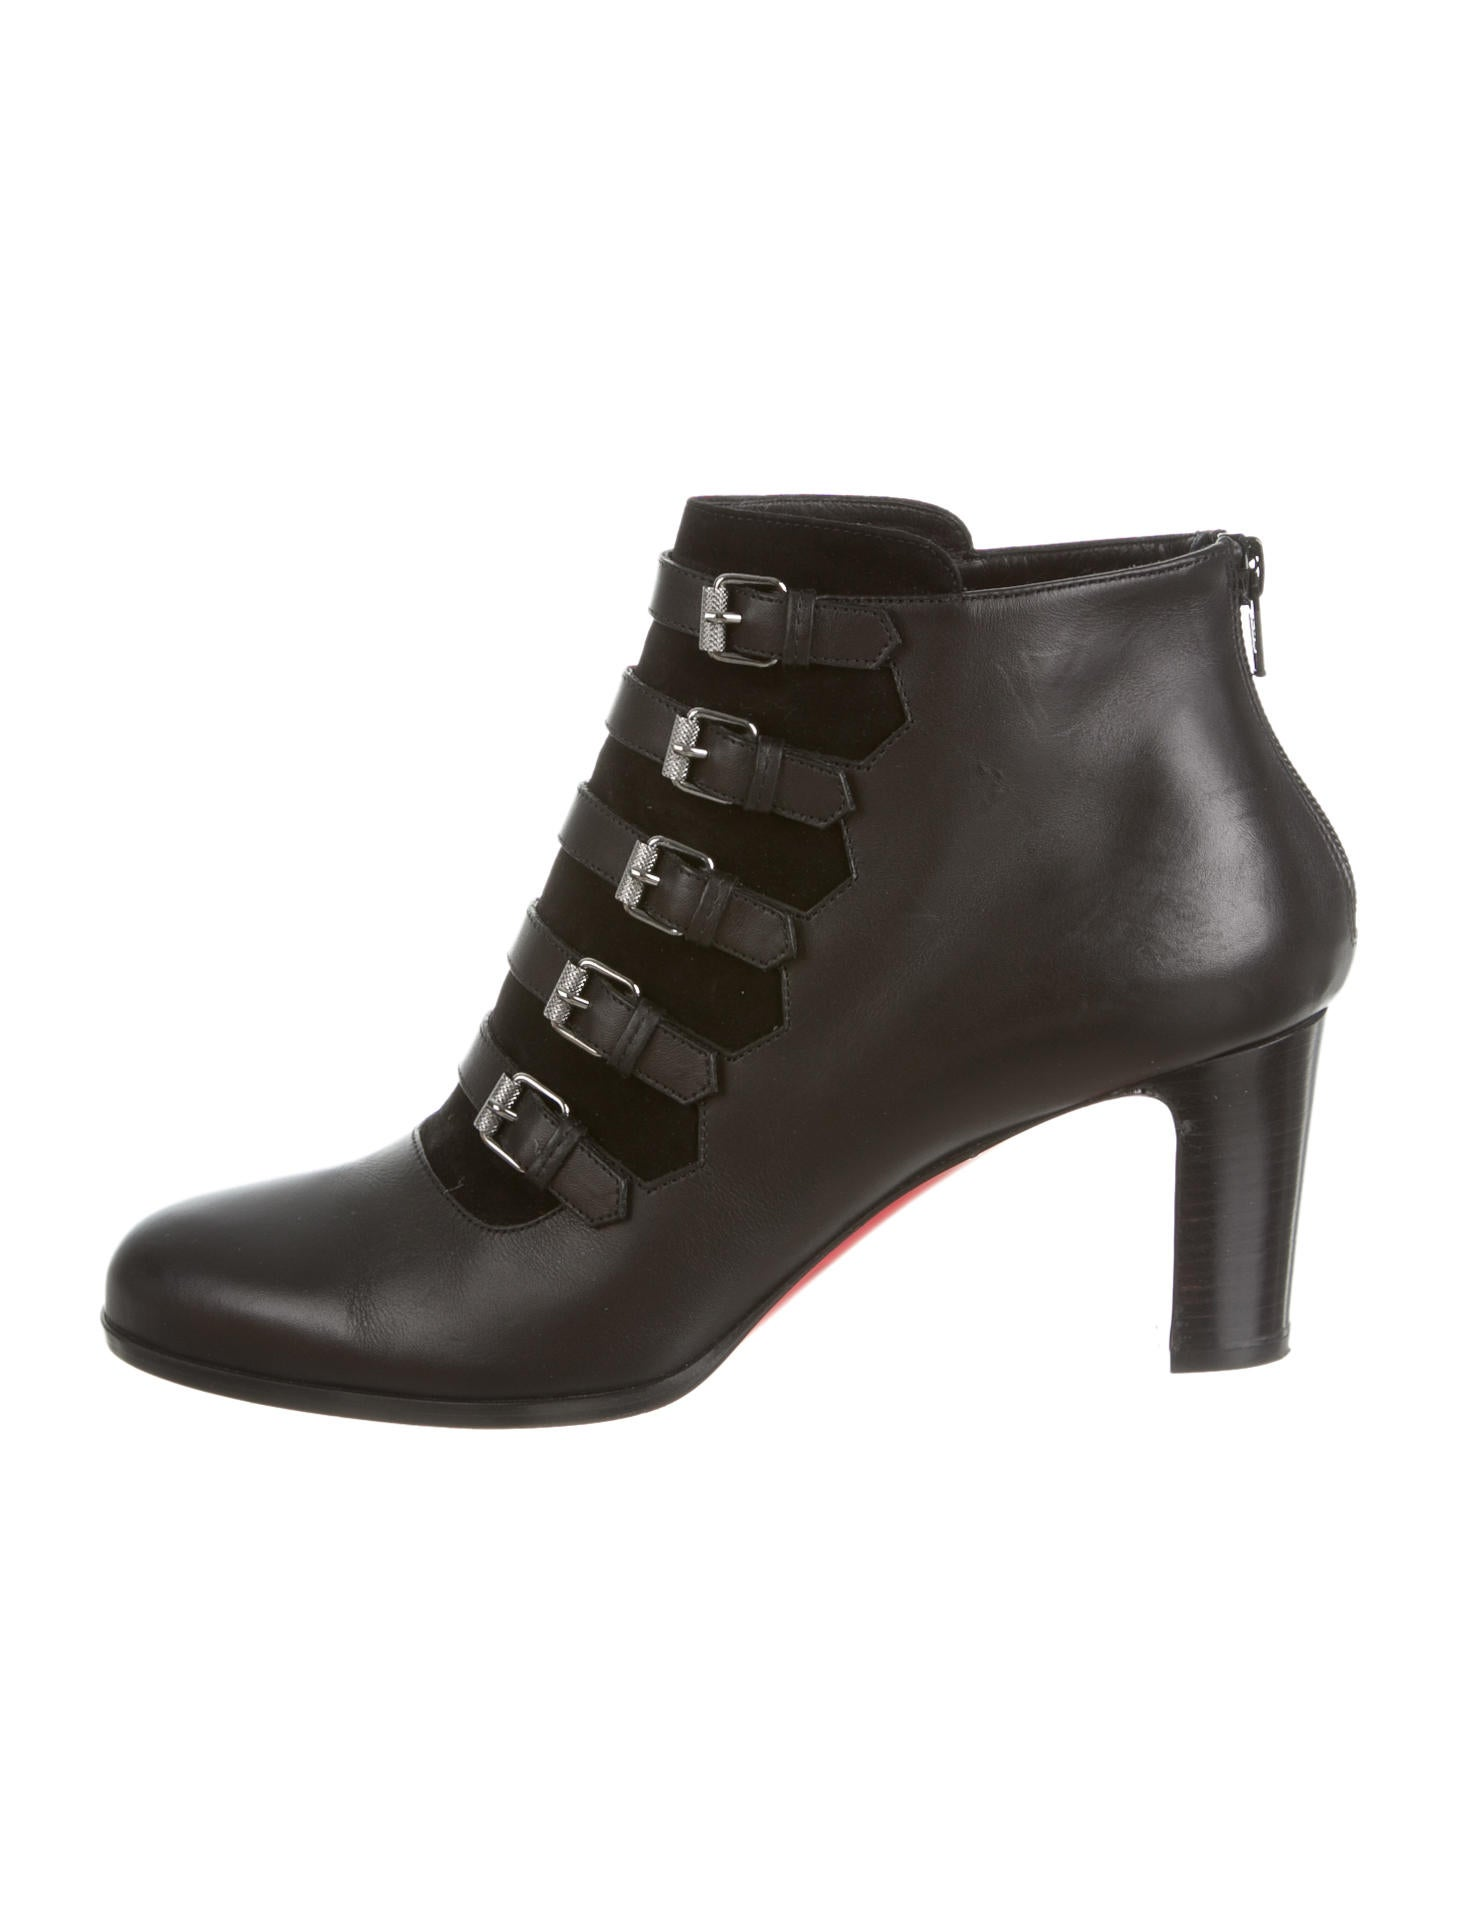 mens louboutin - christian louboutin semi-pointed toe ankle boots Black leather ...